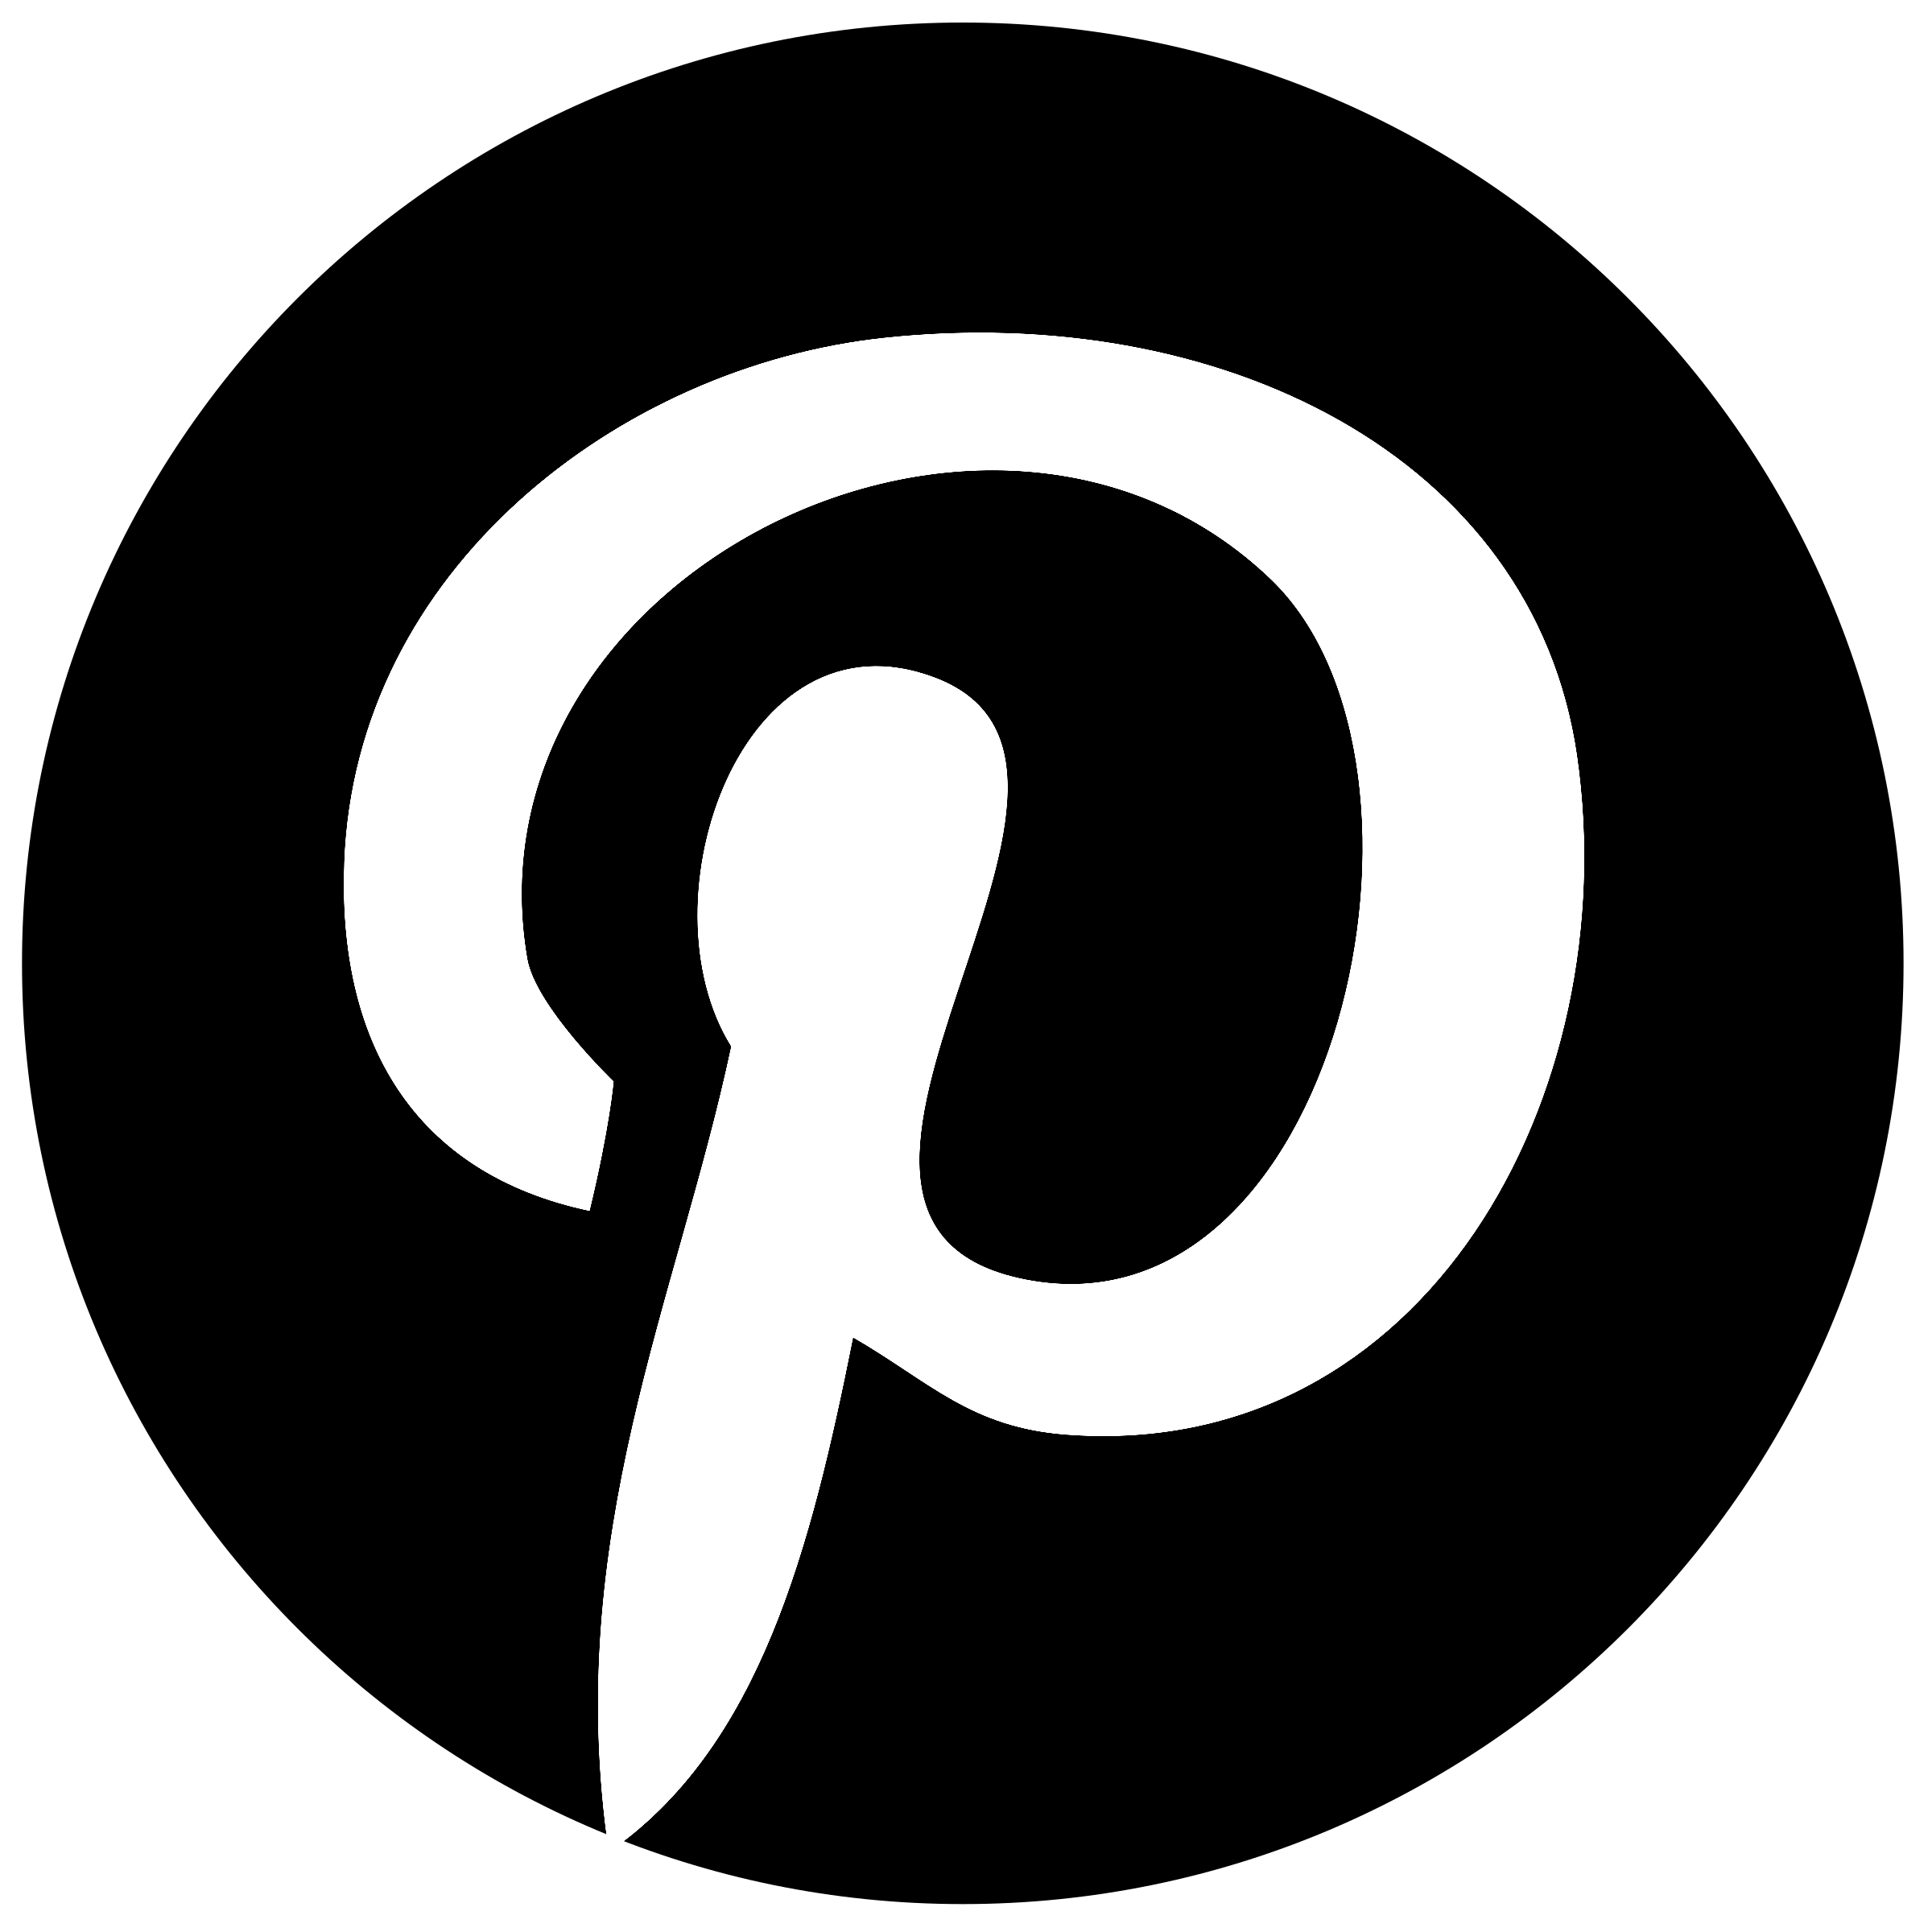 Pinterest Logo PNG Transparent & SVG Vector.